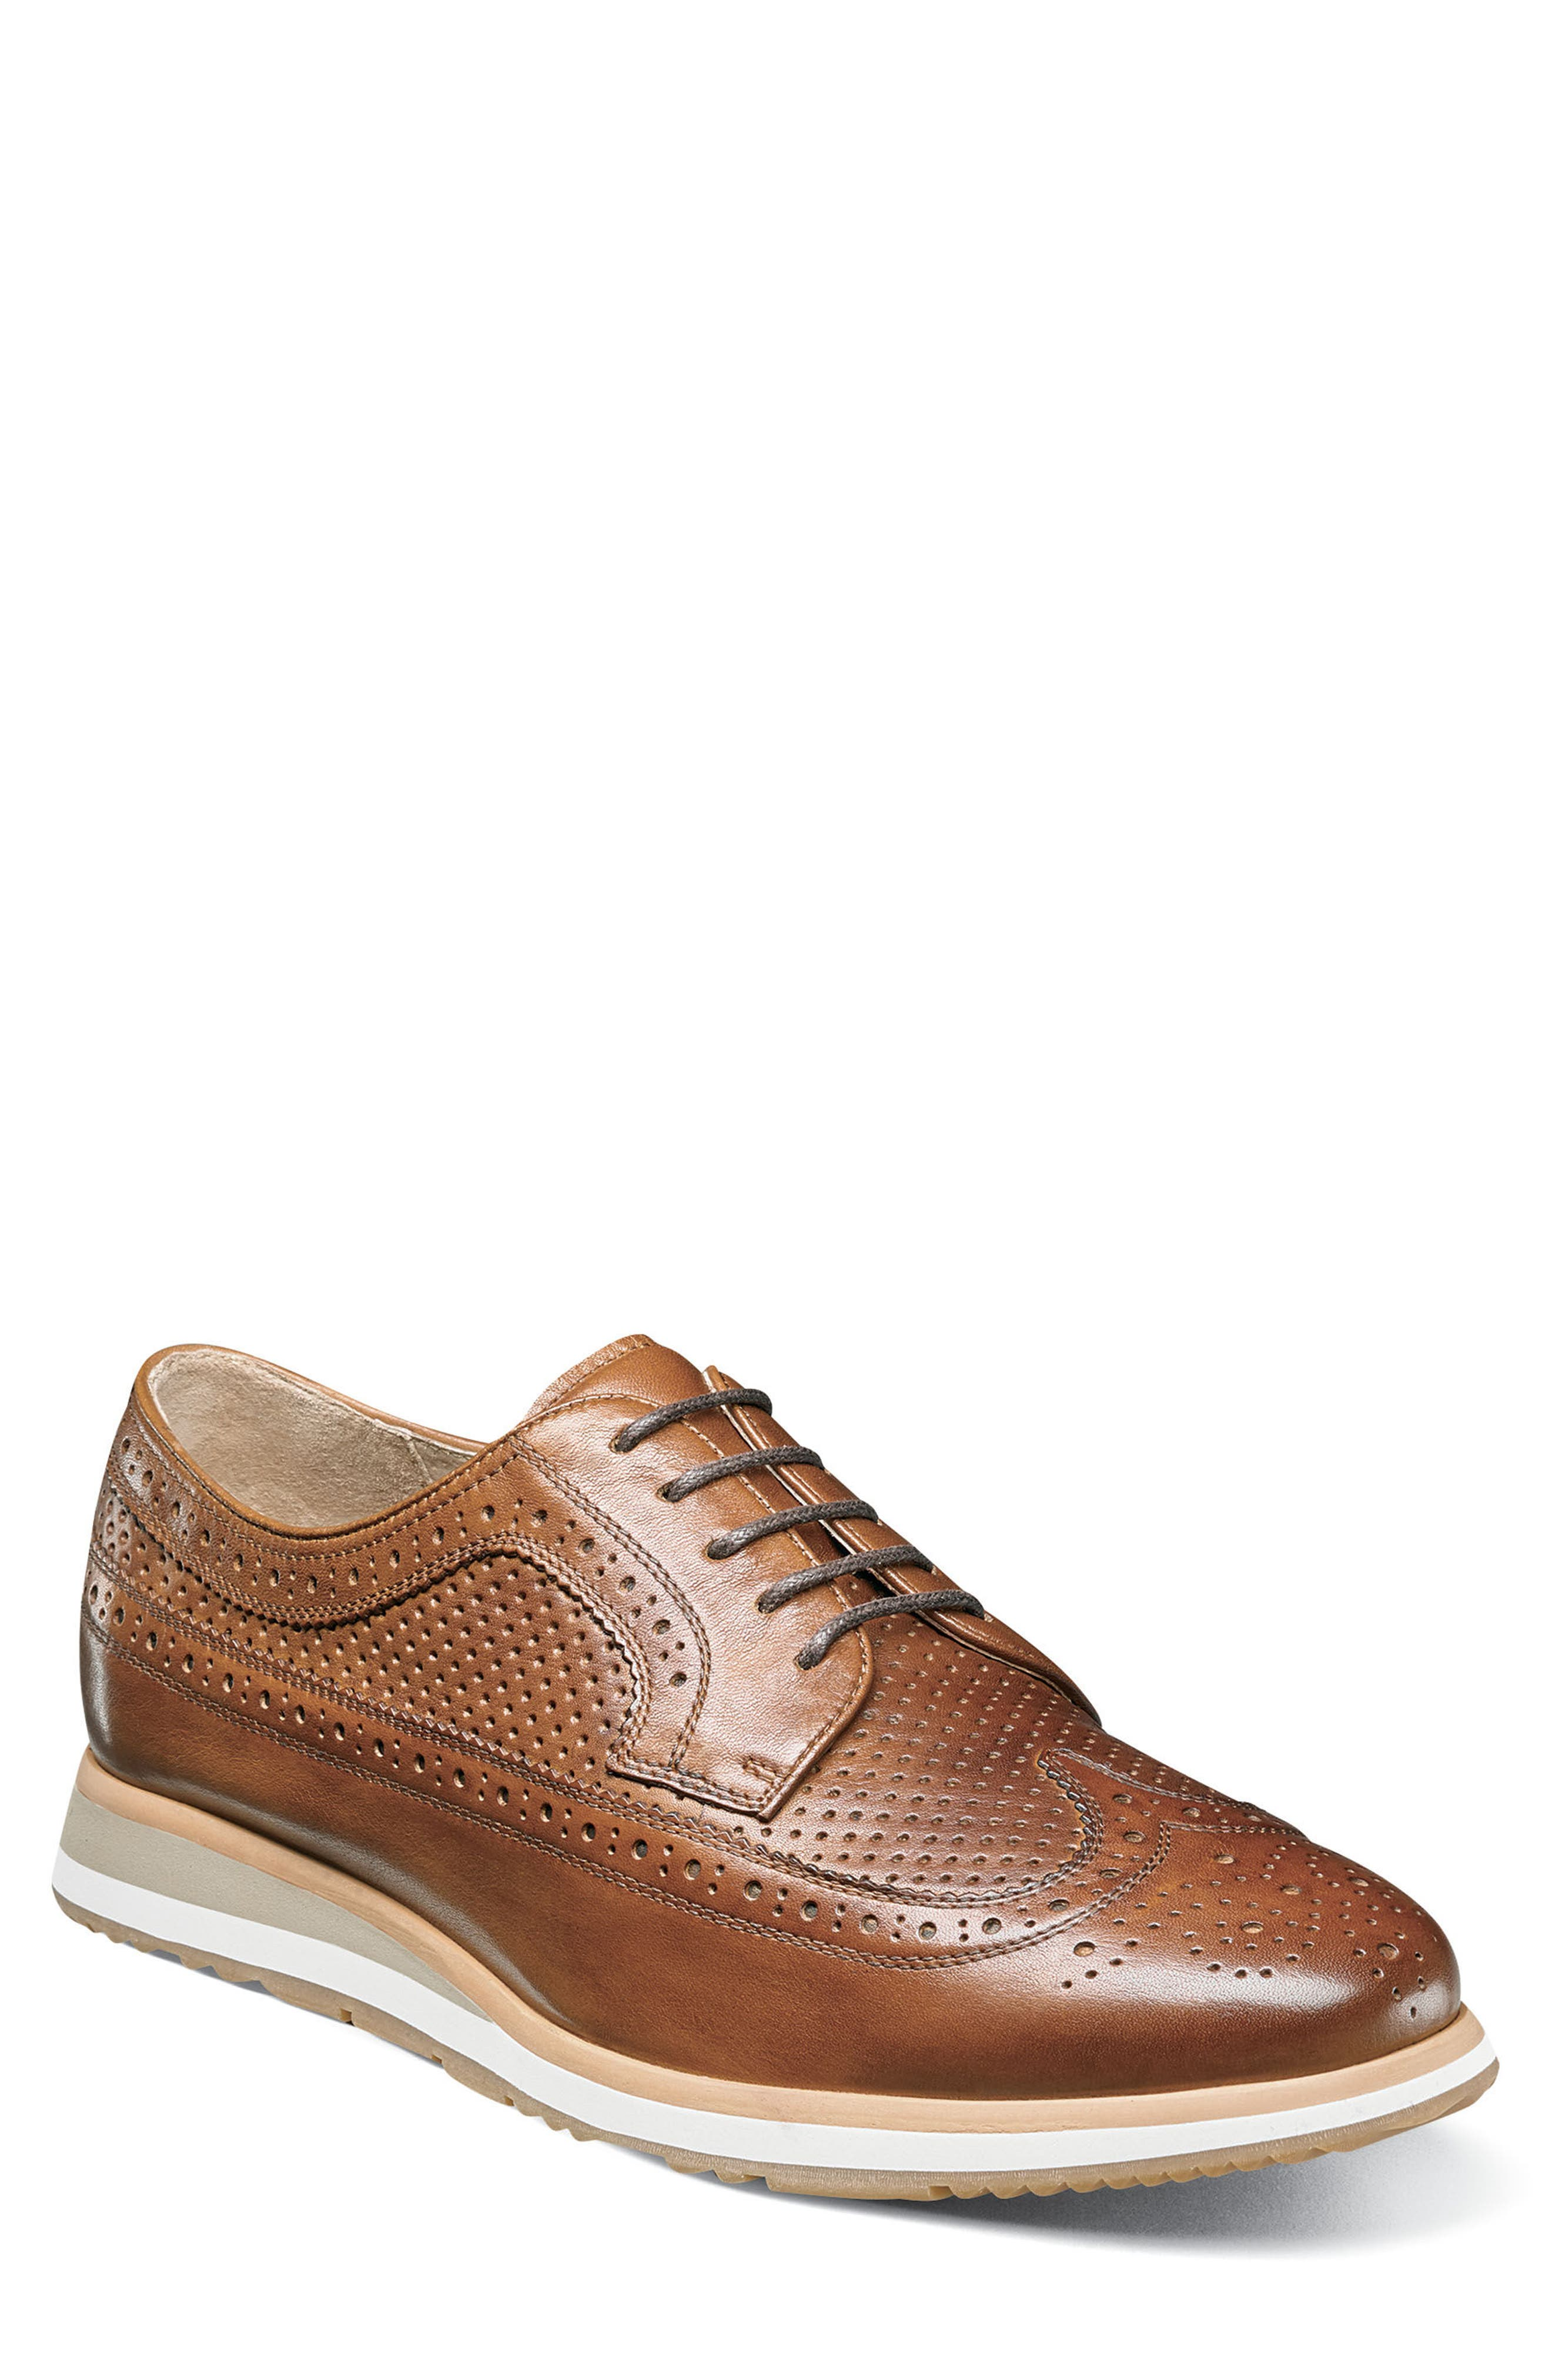 Limited Flux Perforated Wingtip Derby,                         Main,                         color,